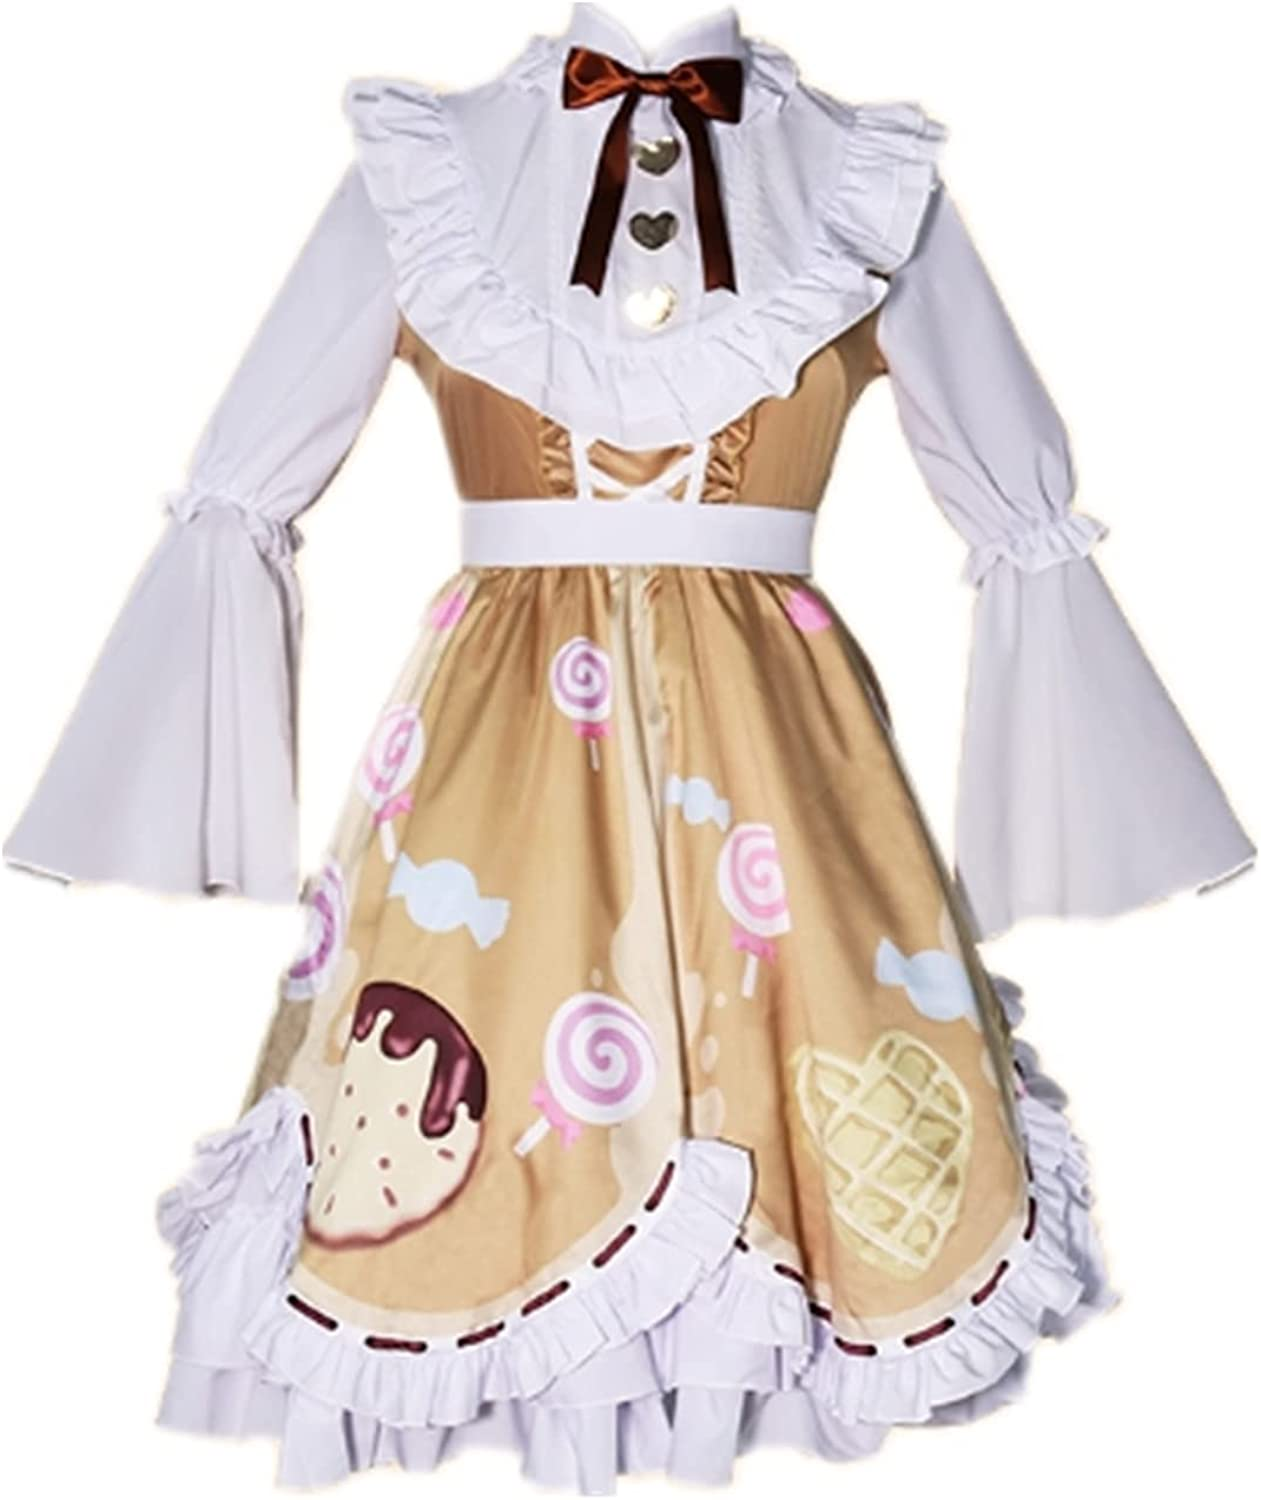 Cosplay Las outlet Vegas Mall Costume Masquerade Identity Candy V Dress Girl